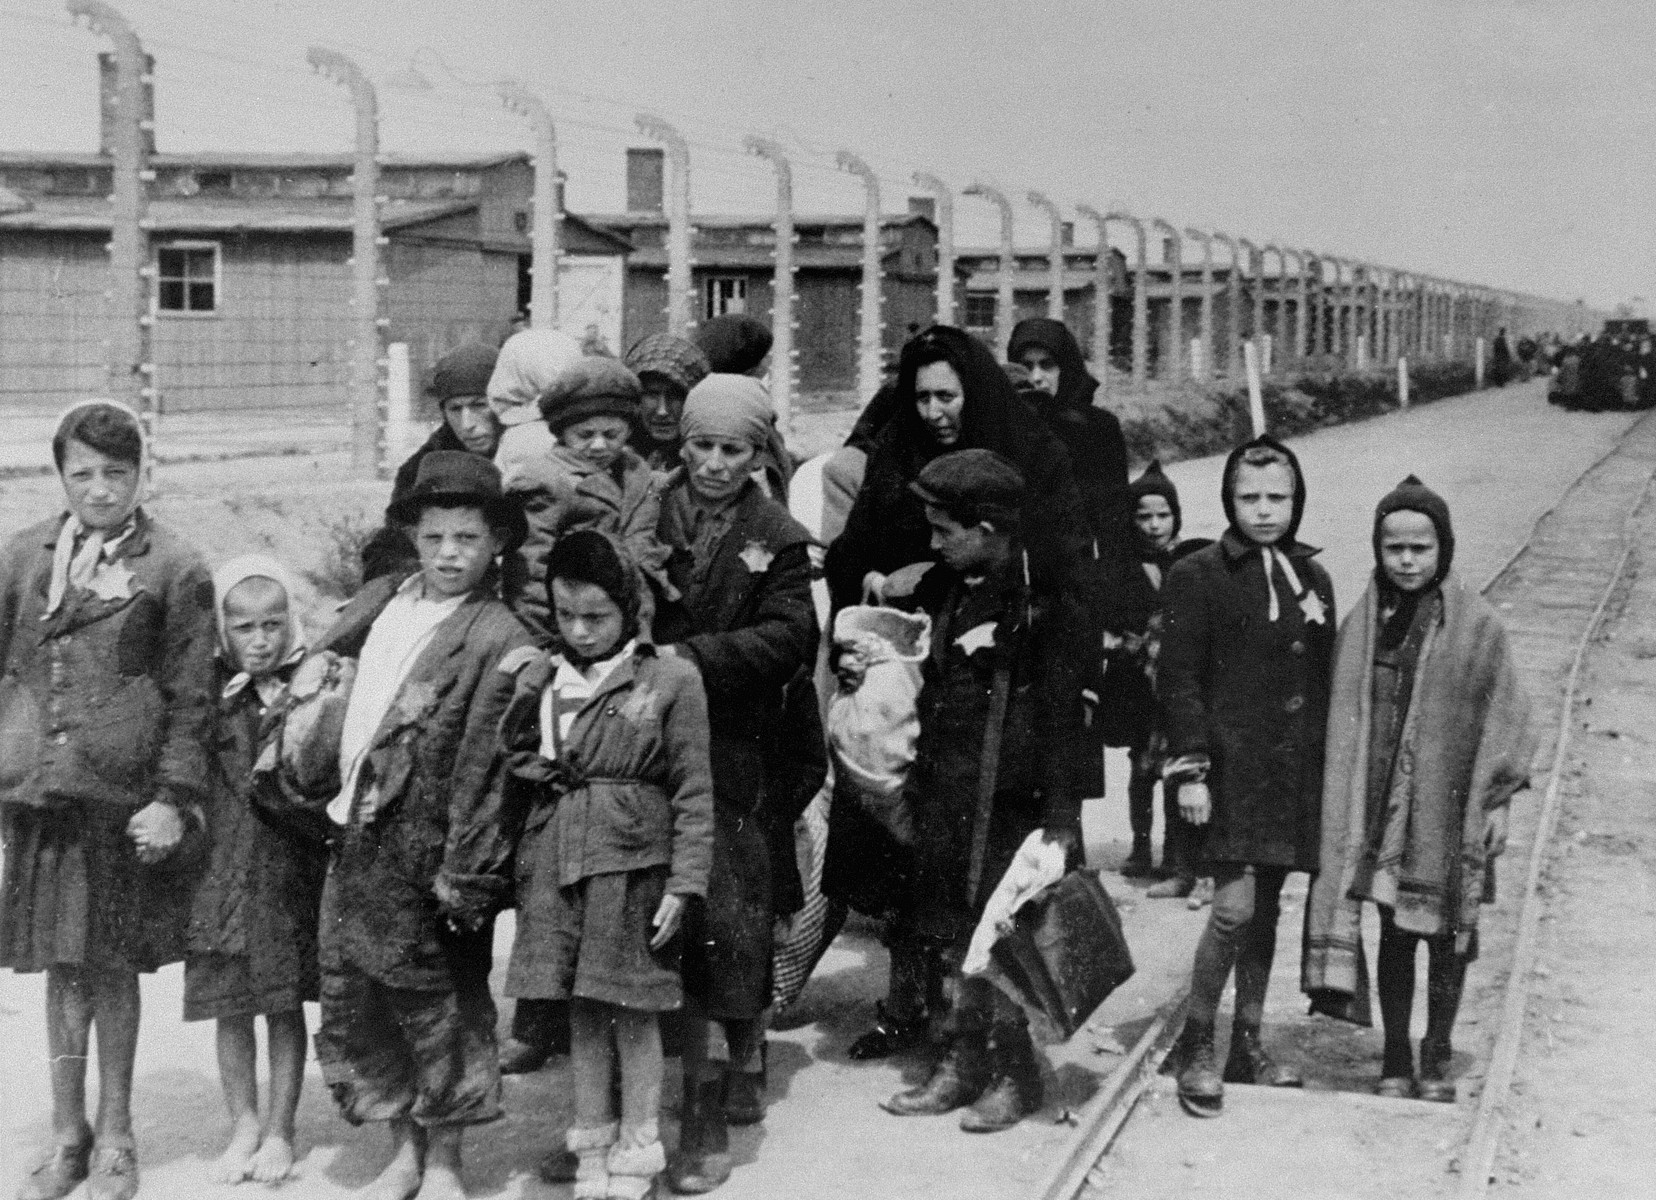 Jewish women and children from Subcarpathian Rus who have been selected for death at Auschwitz-Birkenau, walk toward the gas chambers.